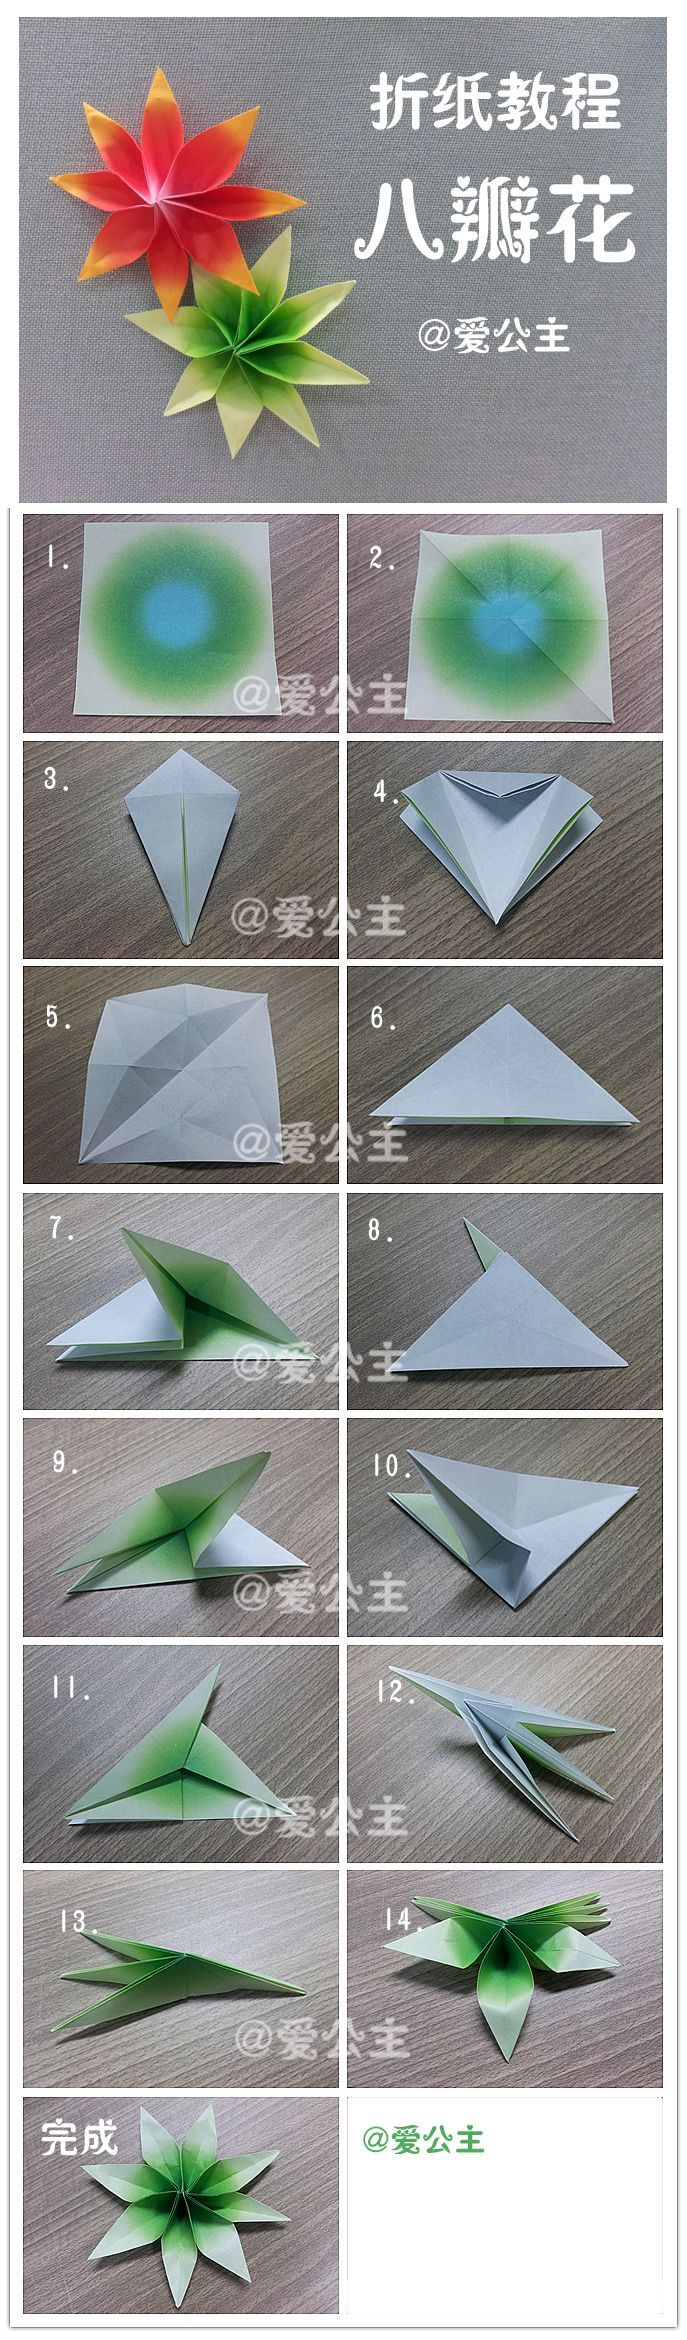 8 piece origami flower diagram circuit connection diagram pin by noee sanchez on para doblar pinterest origami craft and rh pinterest com easy origami mightylinksfo